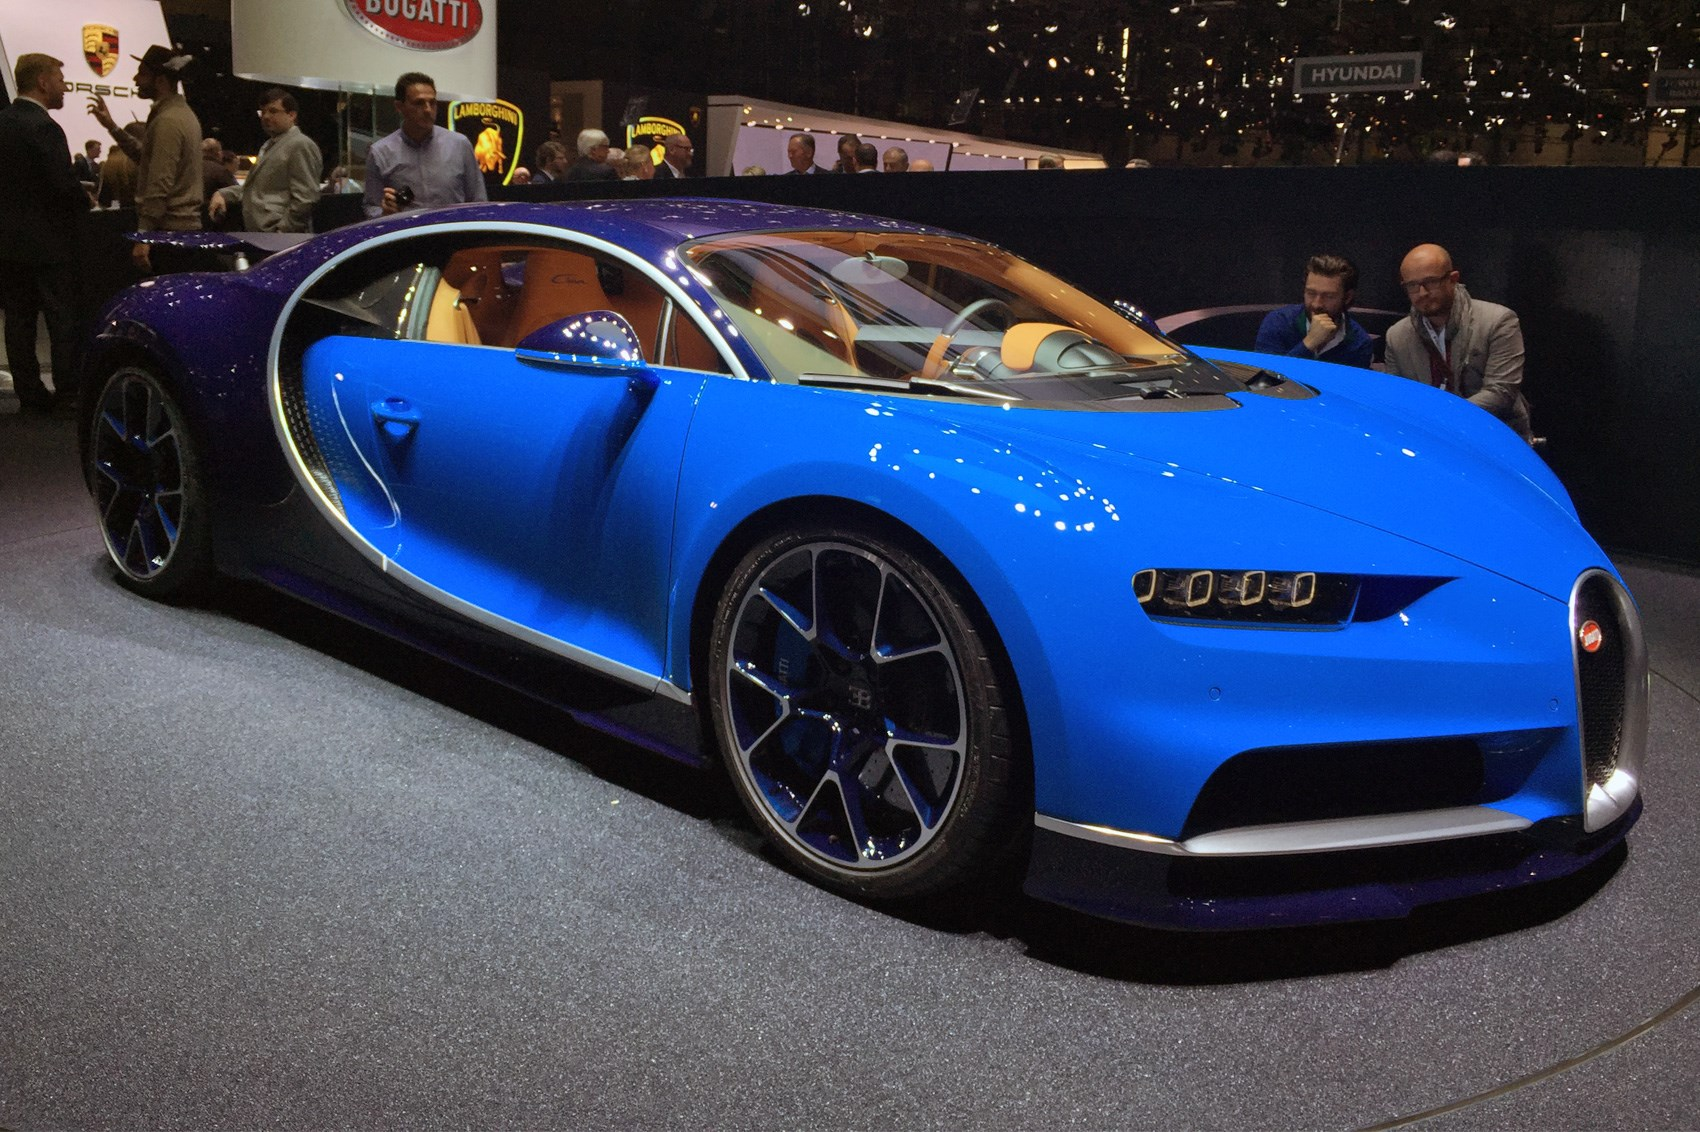 Ultrablogus  Wonderful Bugatti Chiron Revealed At Geneva  The World Has A New  With Likable Bugatti Chiron Revealed At Geneva  The World Has A New Fastest Production Car By Car Magazine With Extraordinary Most Popular Interior Colors Also Interior Doors Long Island In Addition  Ford Interior And  Mustang Interior As Well As How To Customize Car Interior Yourself Additionally Cube Interior Solutions From Carmagazinecouk With Ultrablogus  Likable Bugatti Chiron Revealed At Geneva  The World Has A New  With Extraordinary Bugatti Chiron Revealed At Geneva  The World Has A New Fastest Production Car By Car Magazine And Wonderful Most Popular Interior Colors Also Interior Doors Long Island In Addition  Ford Interior From Carmagazinecouk